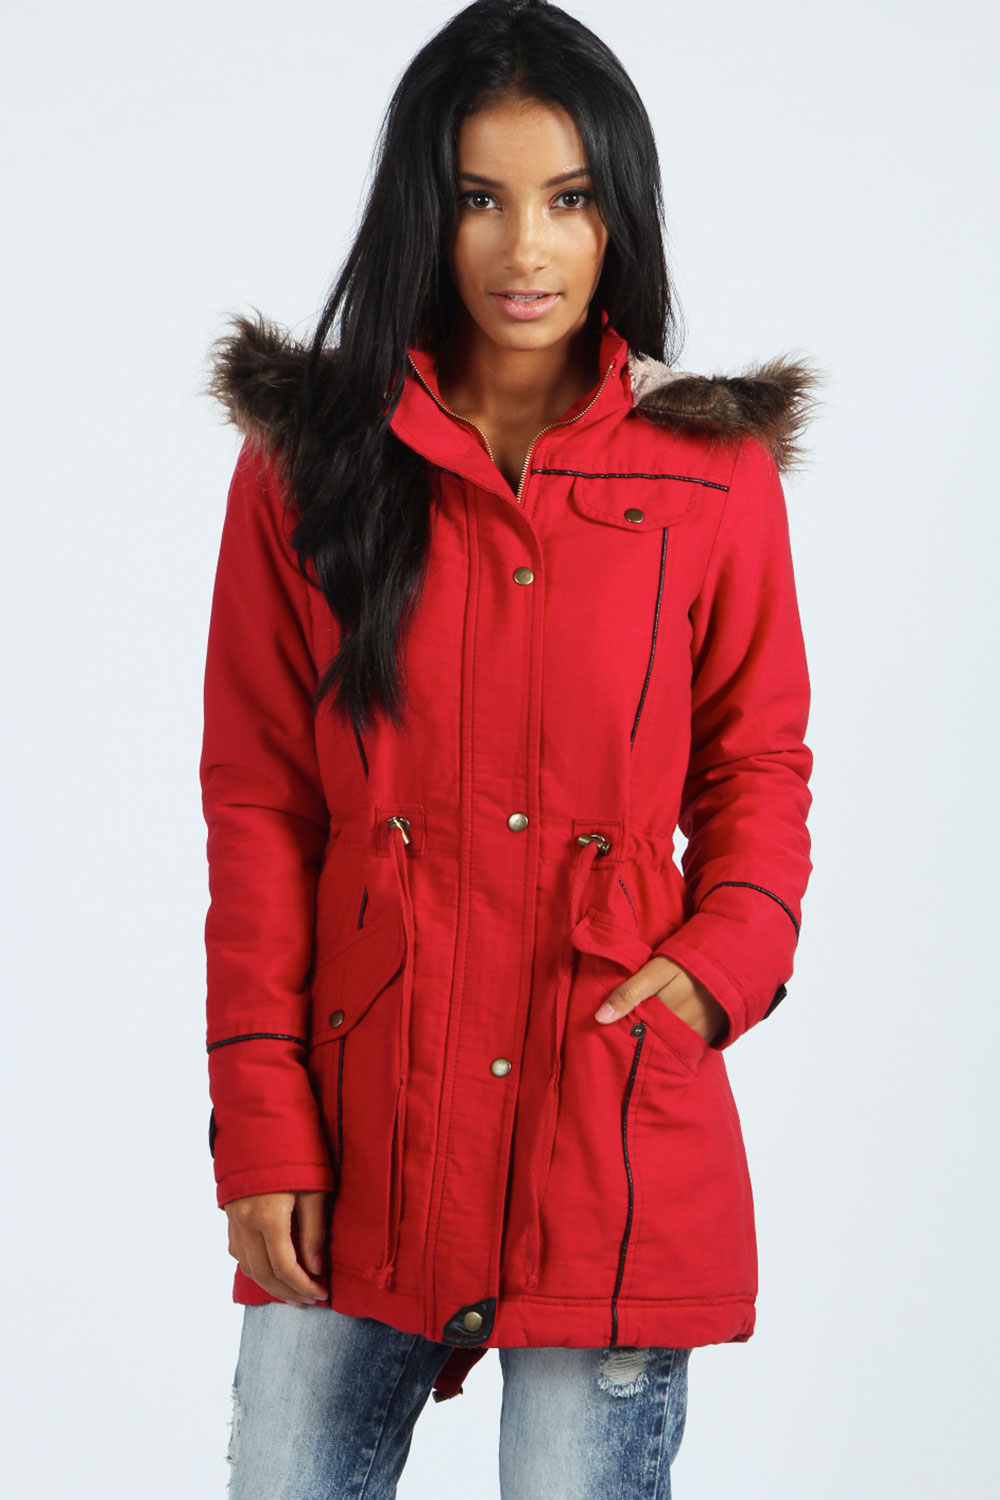 Boohoo Womens Ladies Alia Pu Fur Trim Parka Jacket | eBay